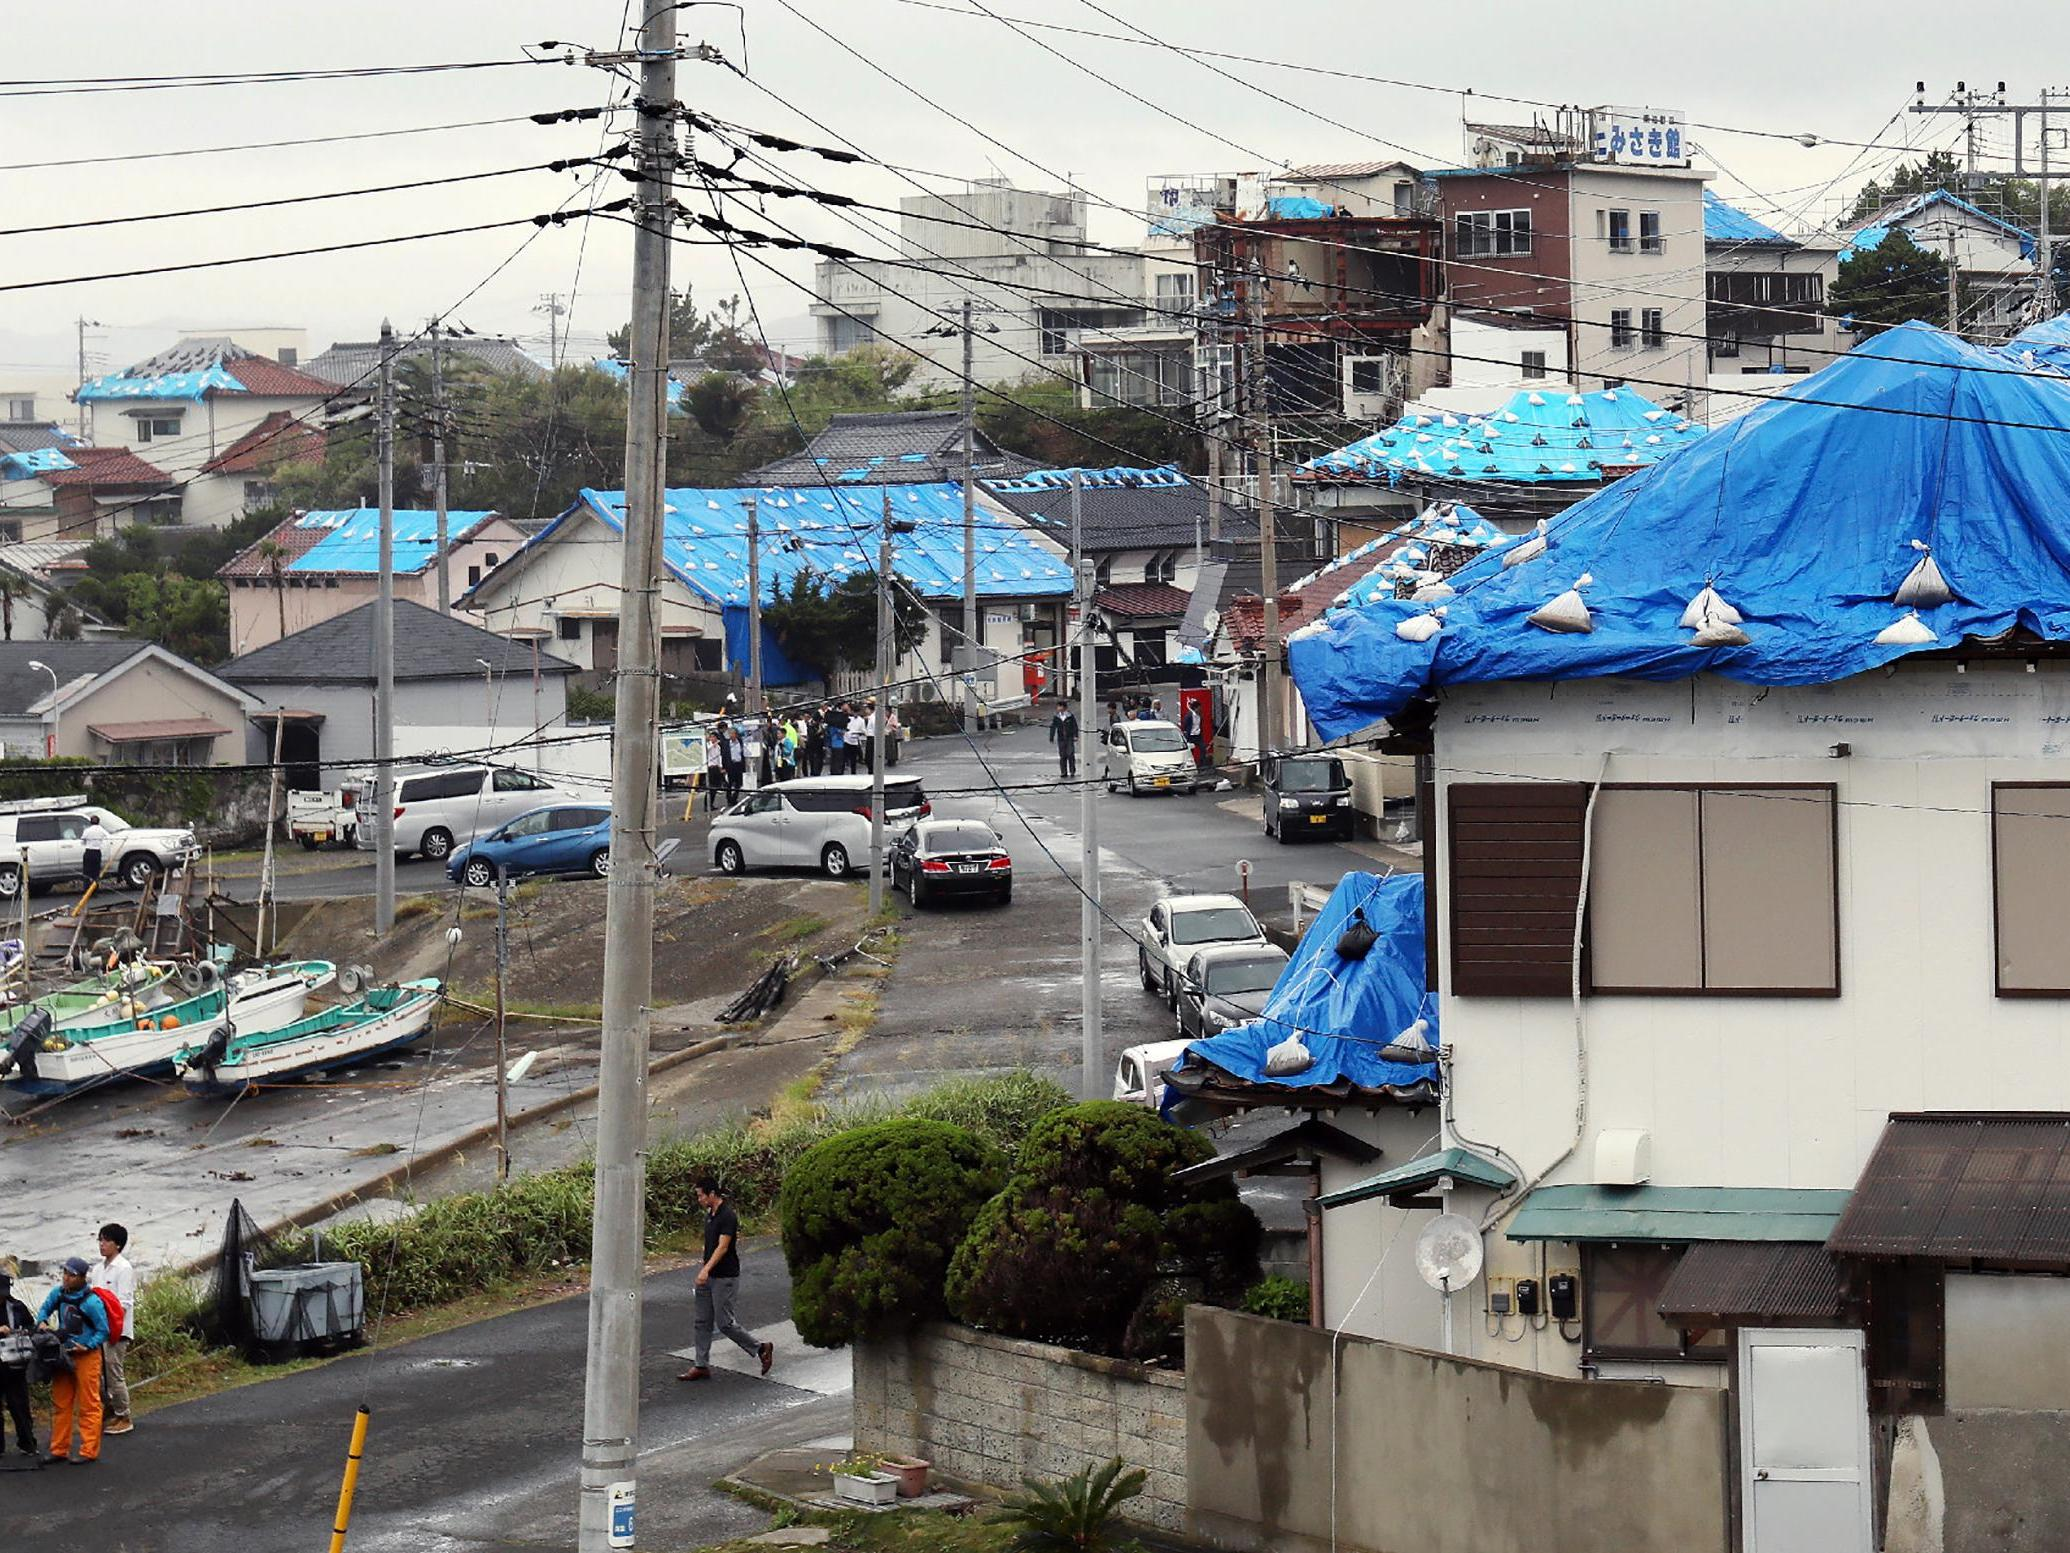 Typhoon Hagibis latest: Evacuations ordered and buildings damaged as storm closes in on Japan